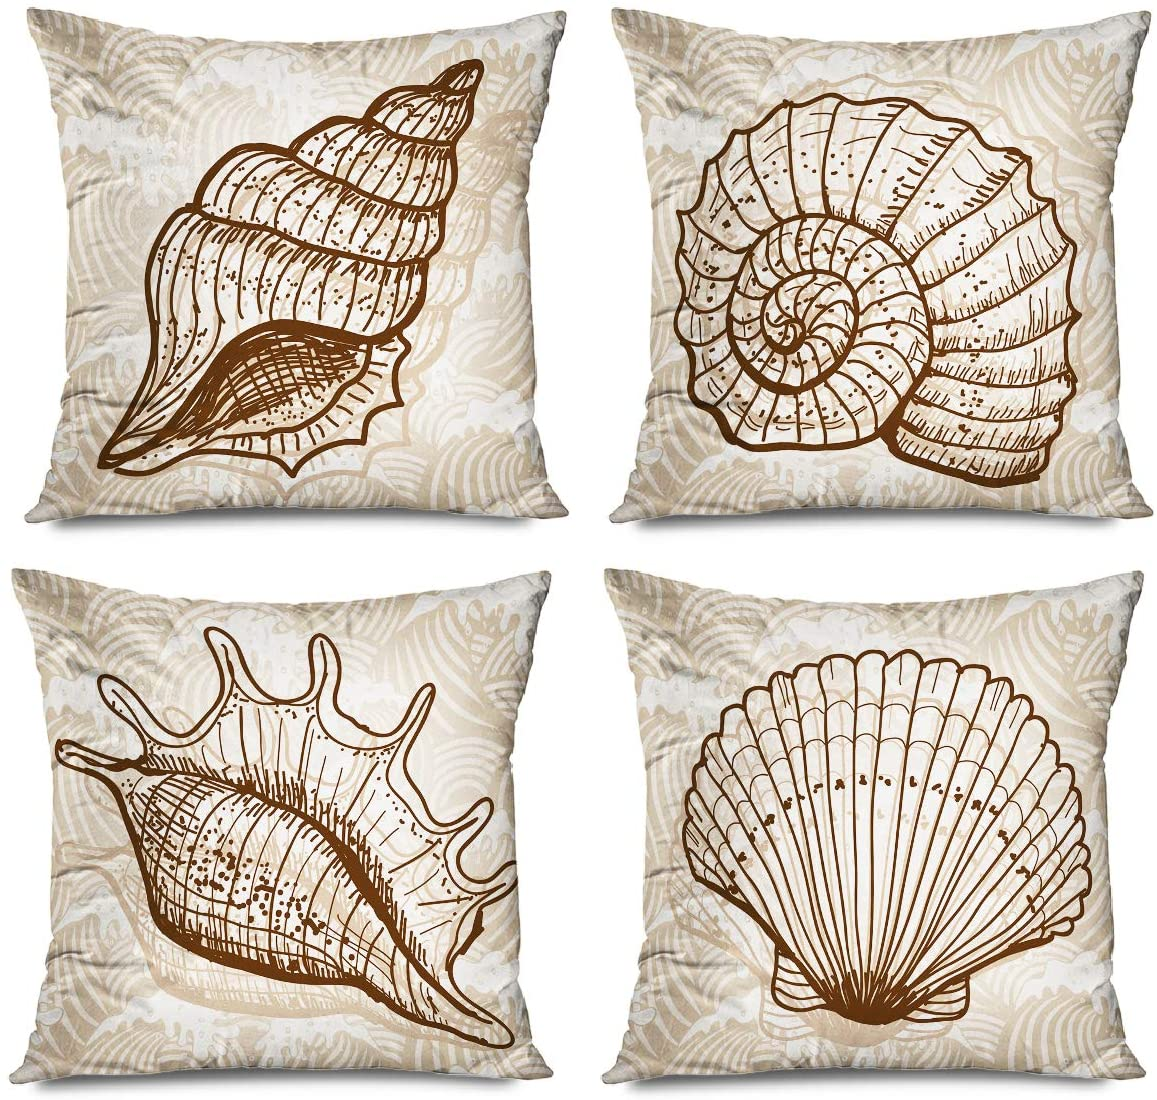 Onete Set of 4 Sea Shell Decorative Throw Pillow Cover Vintage Style Pillowcase 18 X 18 Inches